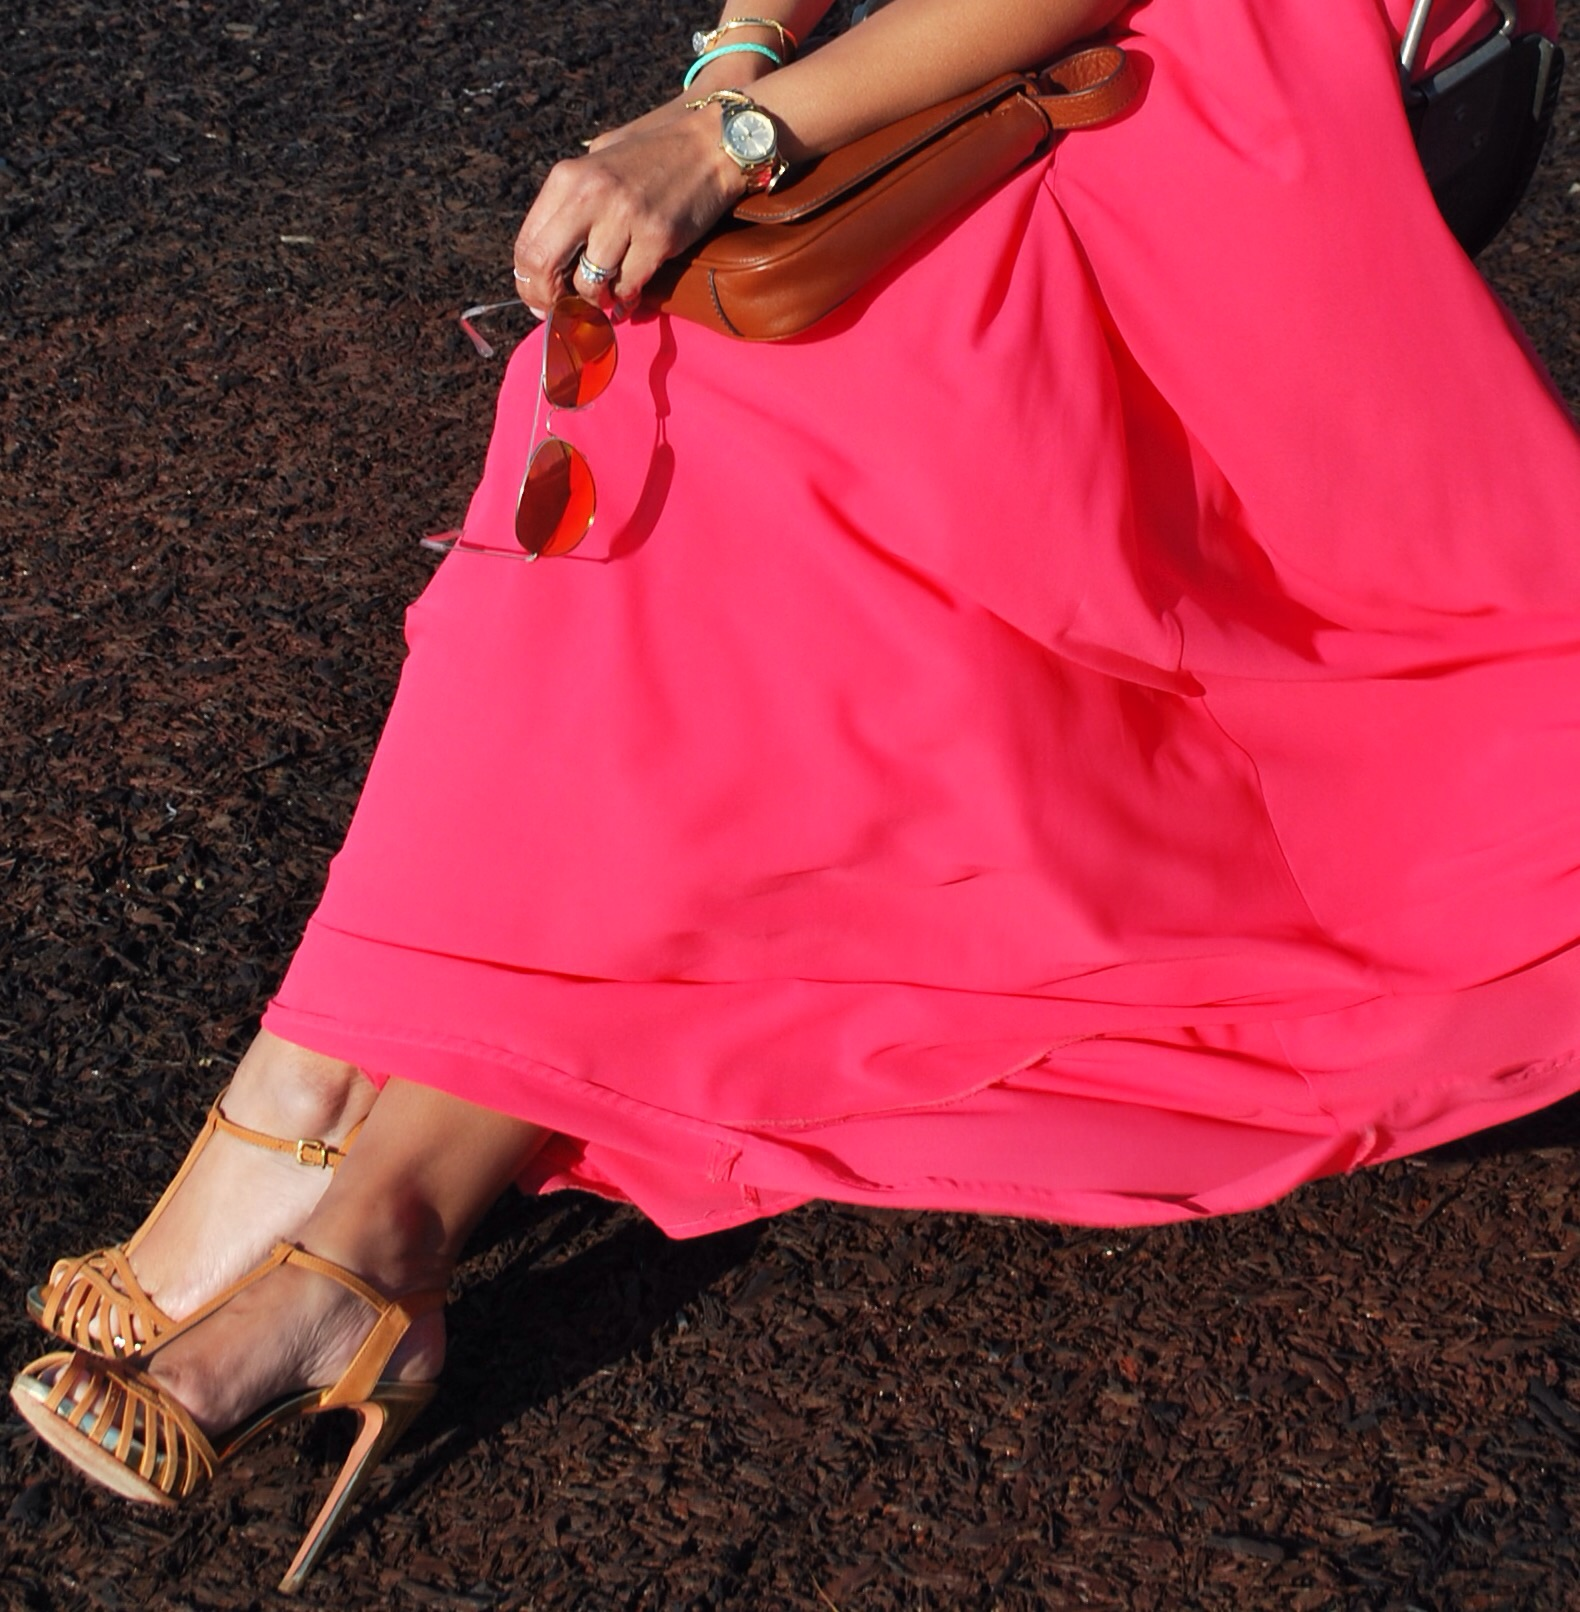 This Season's Gold // chambray shirt and pink maxi skirt